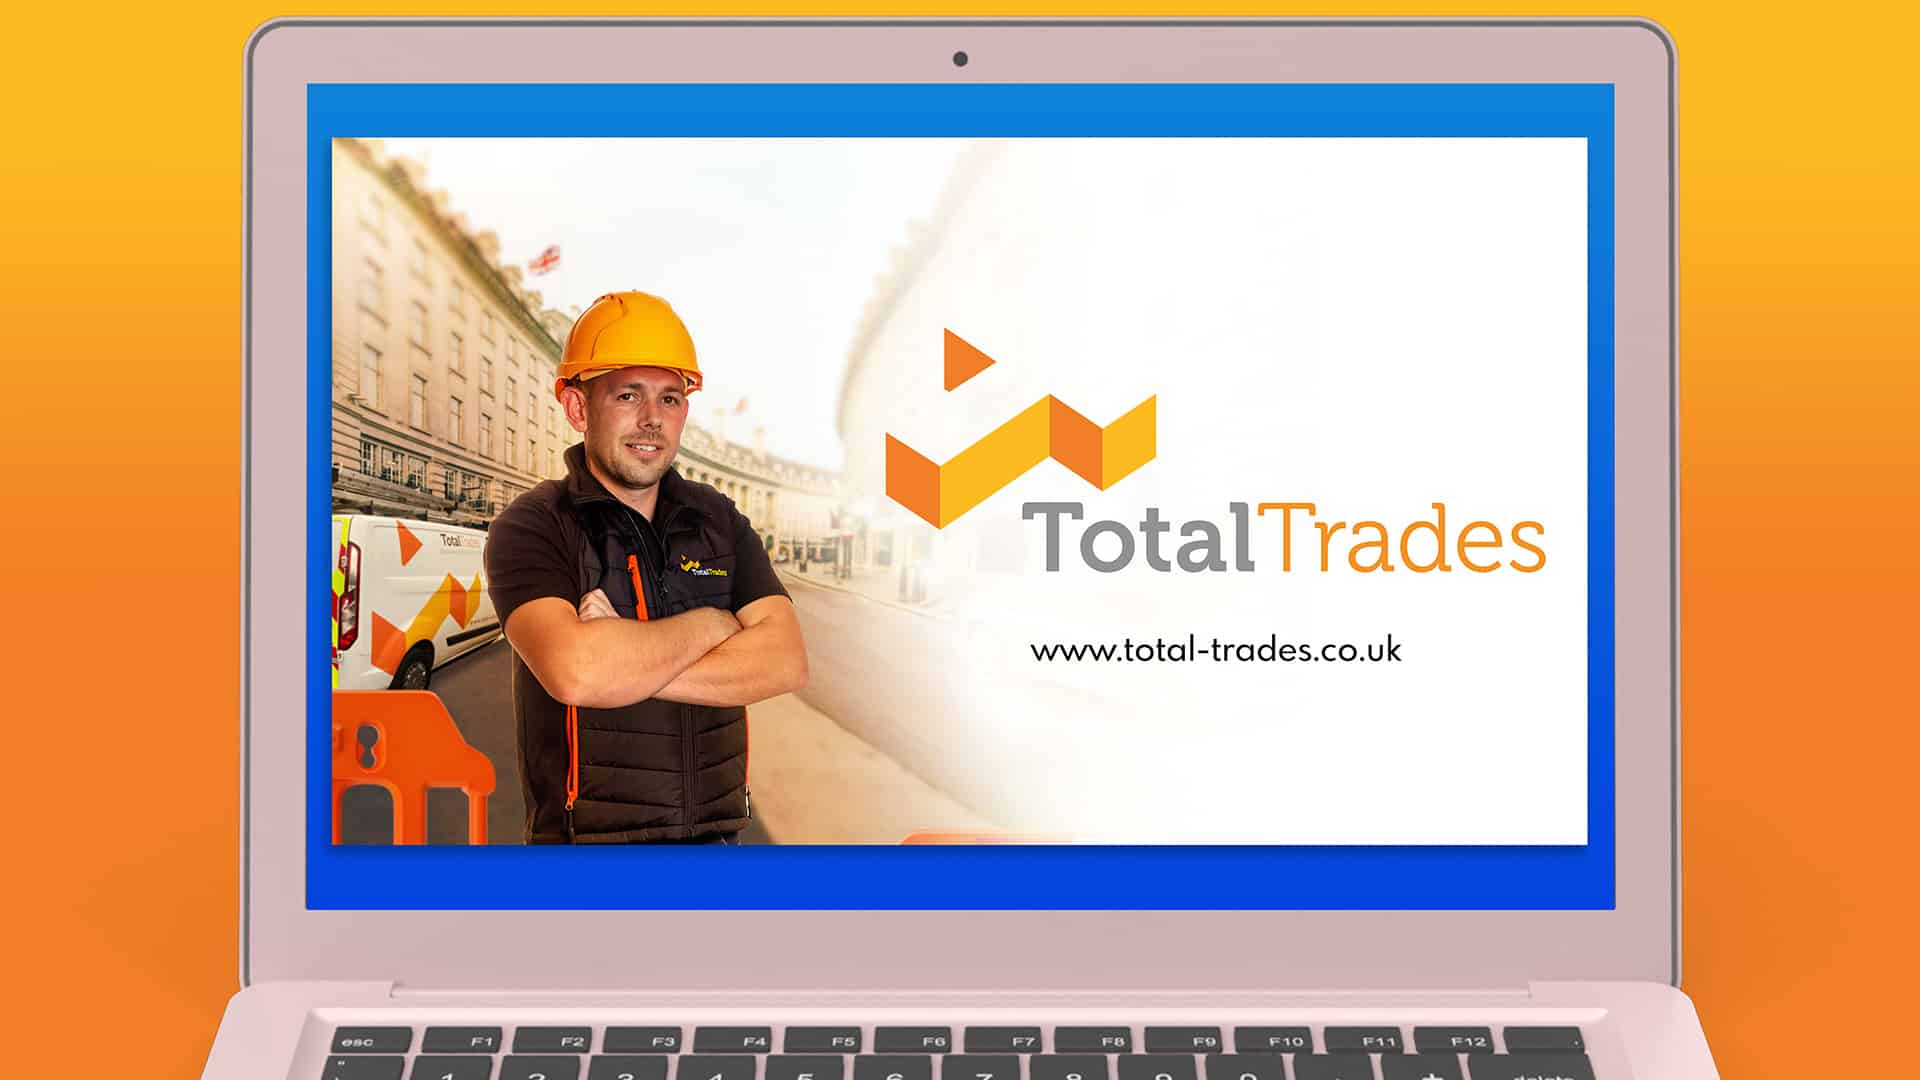 Total Trades Image 3